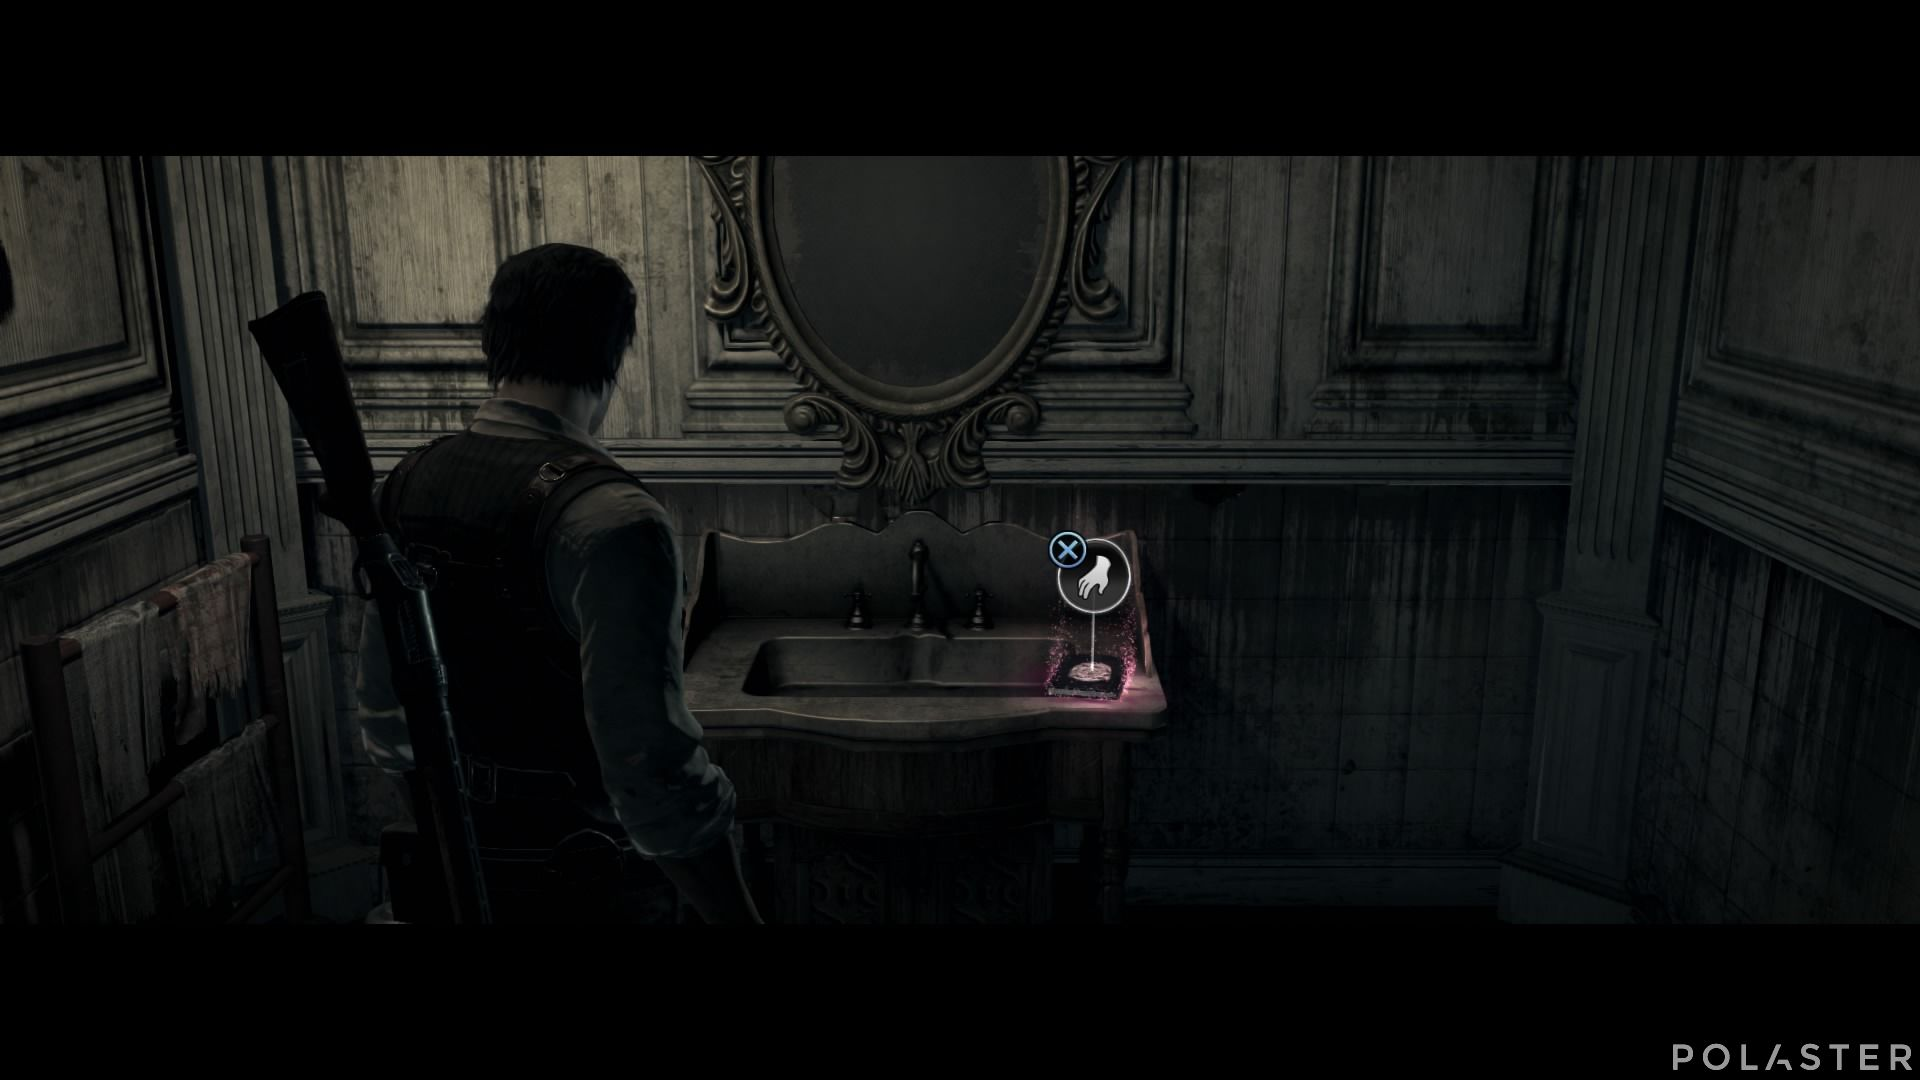 The Evil Within - Coleccionables - Documento personal: Recorte del periódico Krimson Post